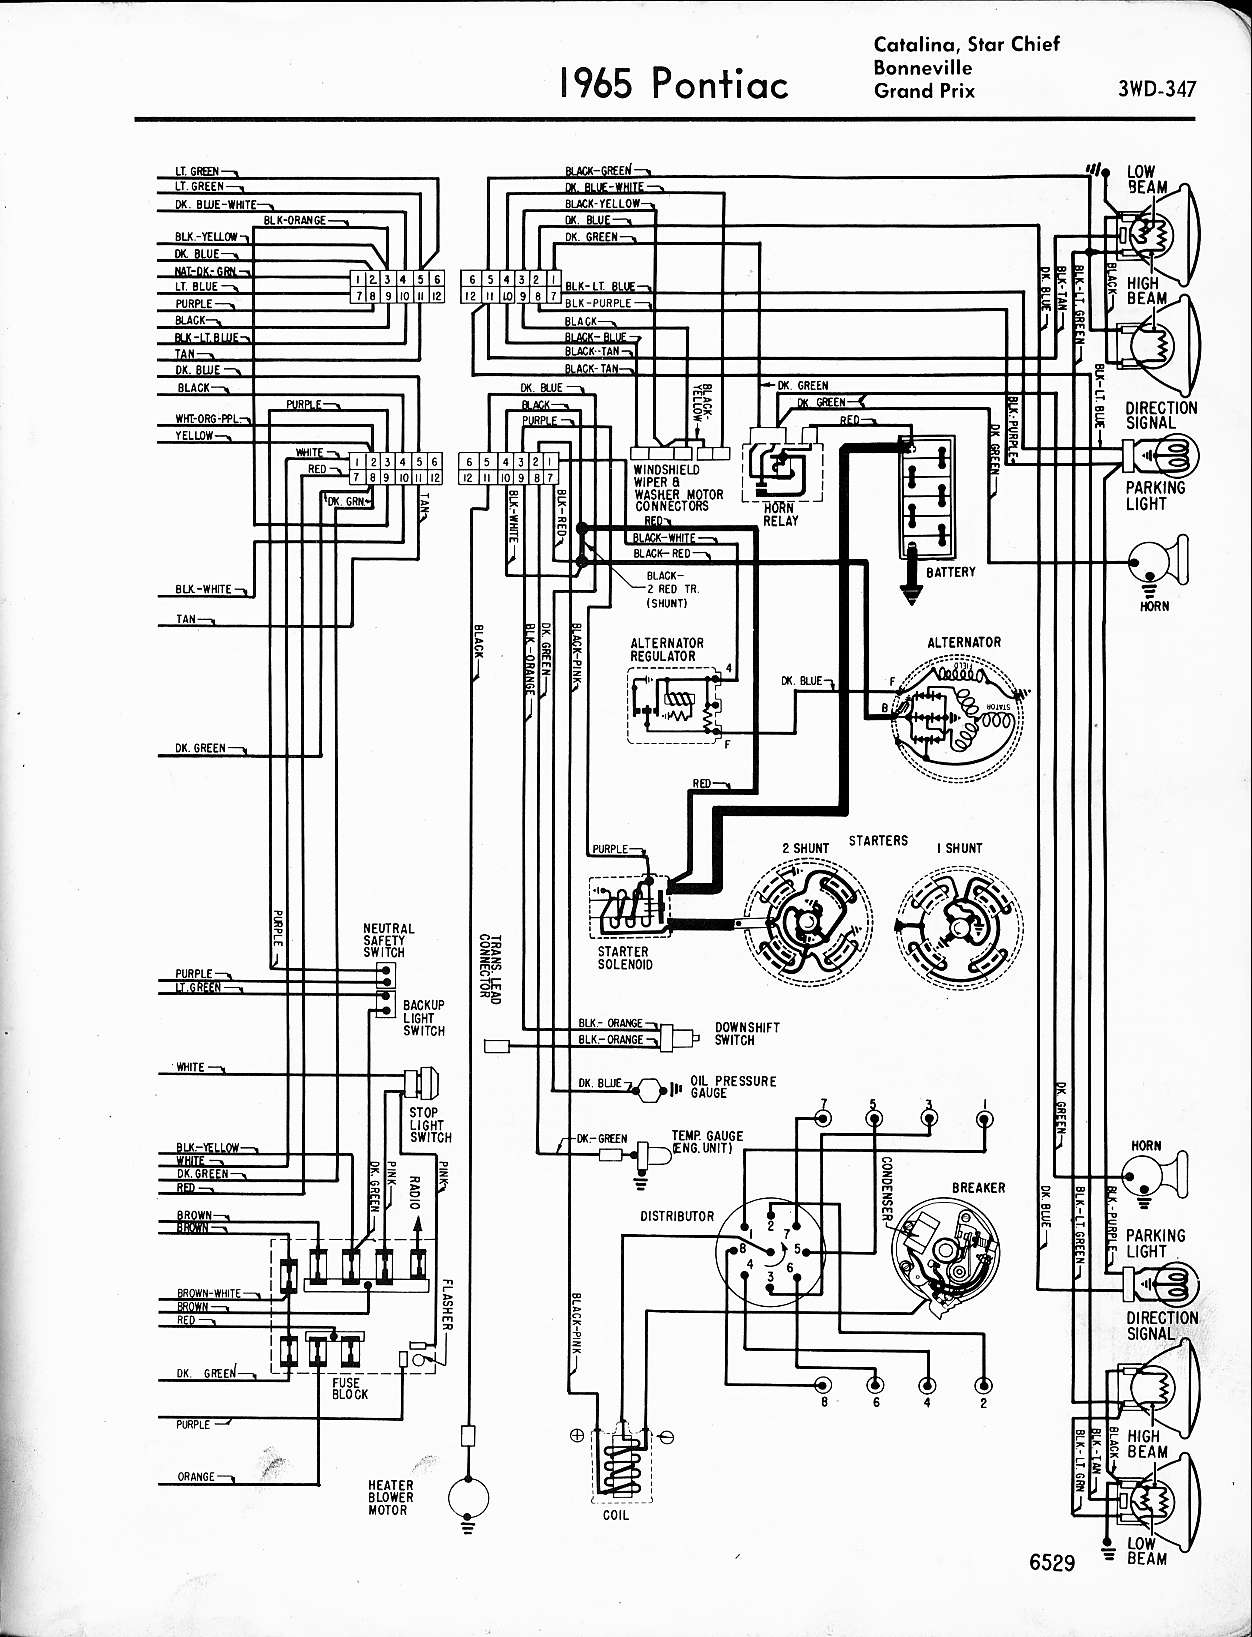 67 pontiac coil wiring diagram  67  free engine image for